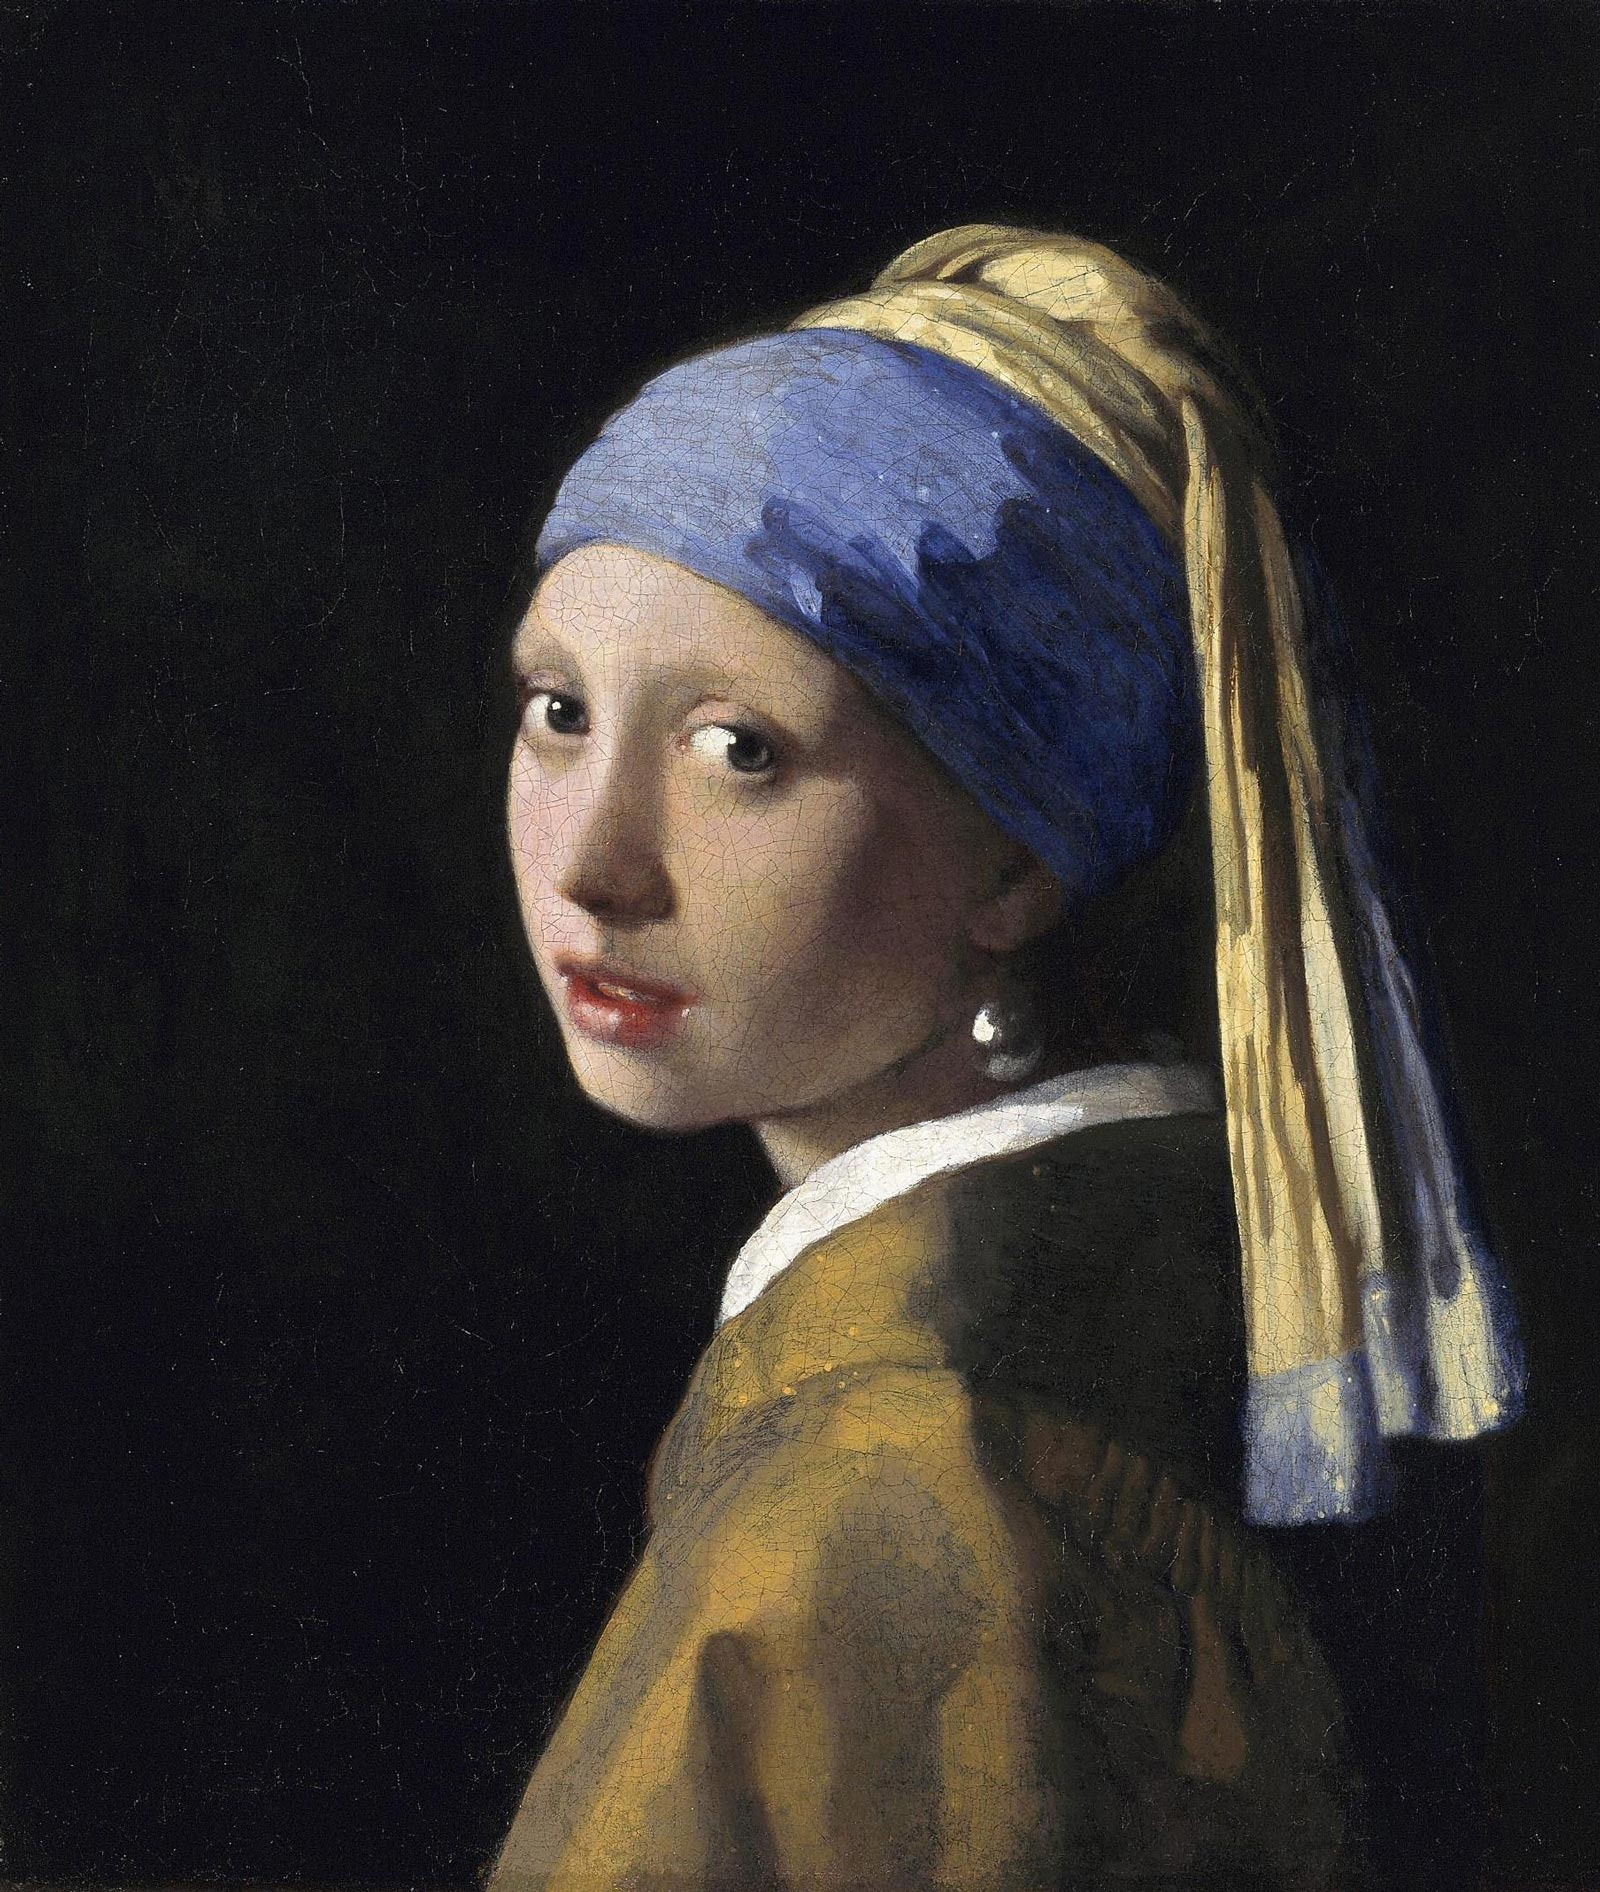 Girl with a Pearl Earring, Johannes Vermeer, vermeer camera obscura